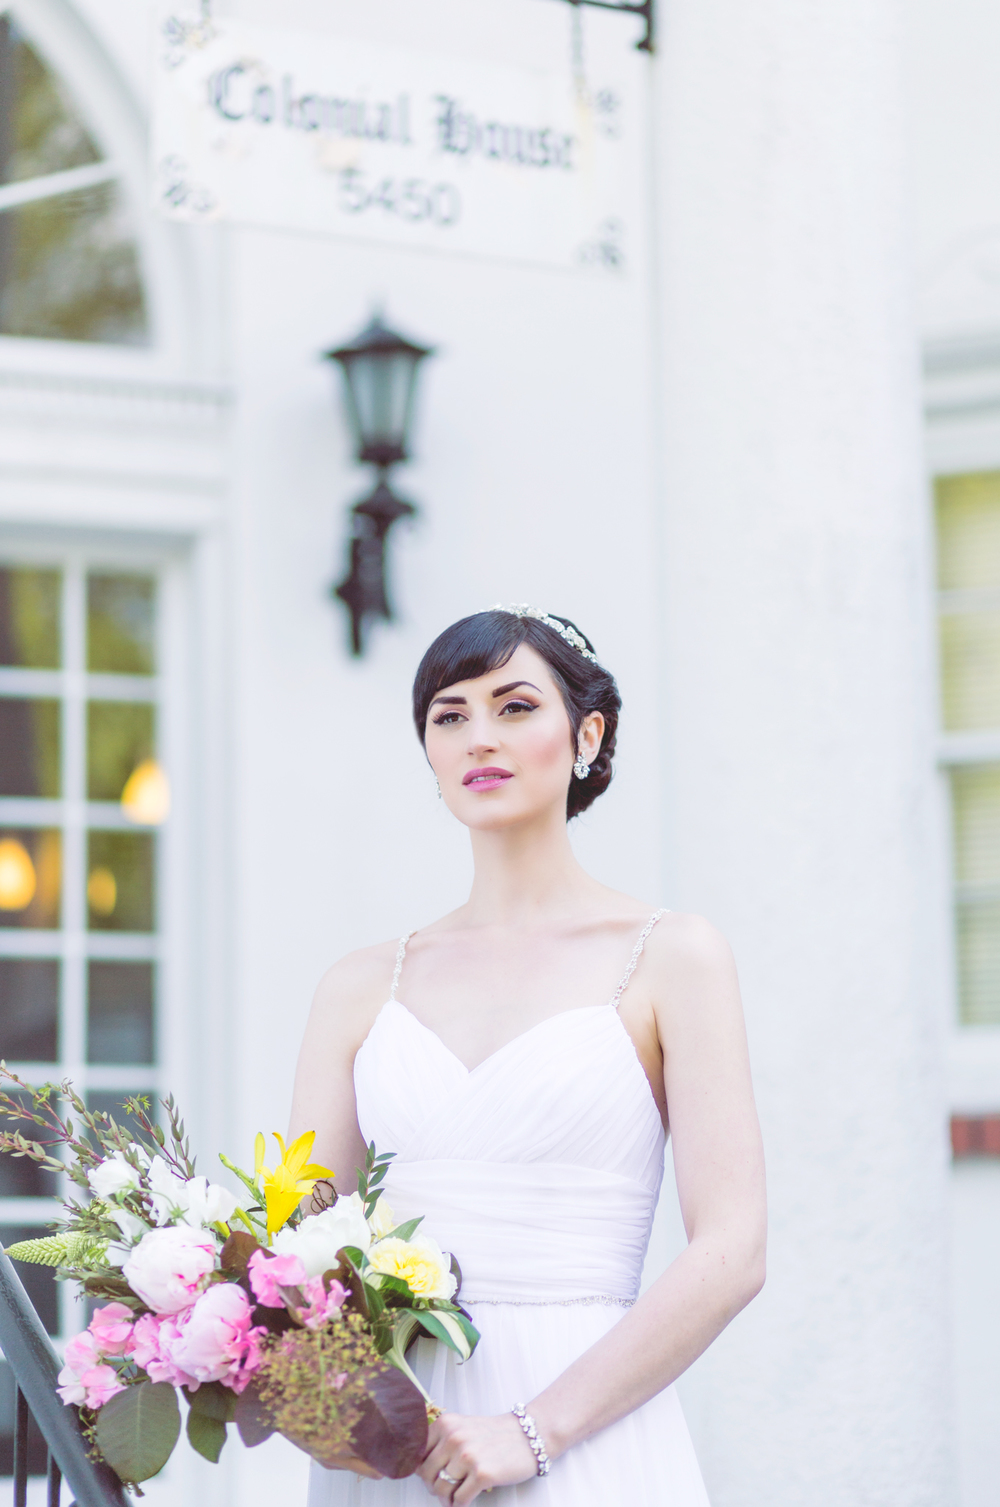 IMG_3176-VANCOUVER-BRIDAL-EDITORIAL-JENNIFER-PICARD-PHOTOGRAPHY.jpg